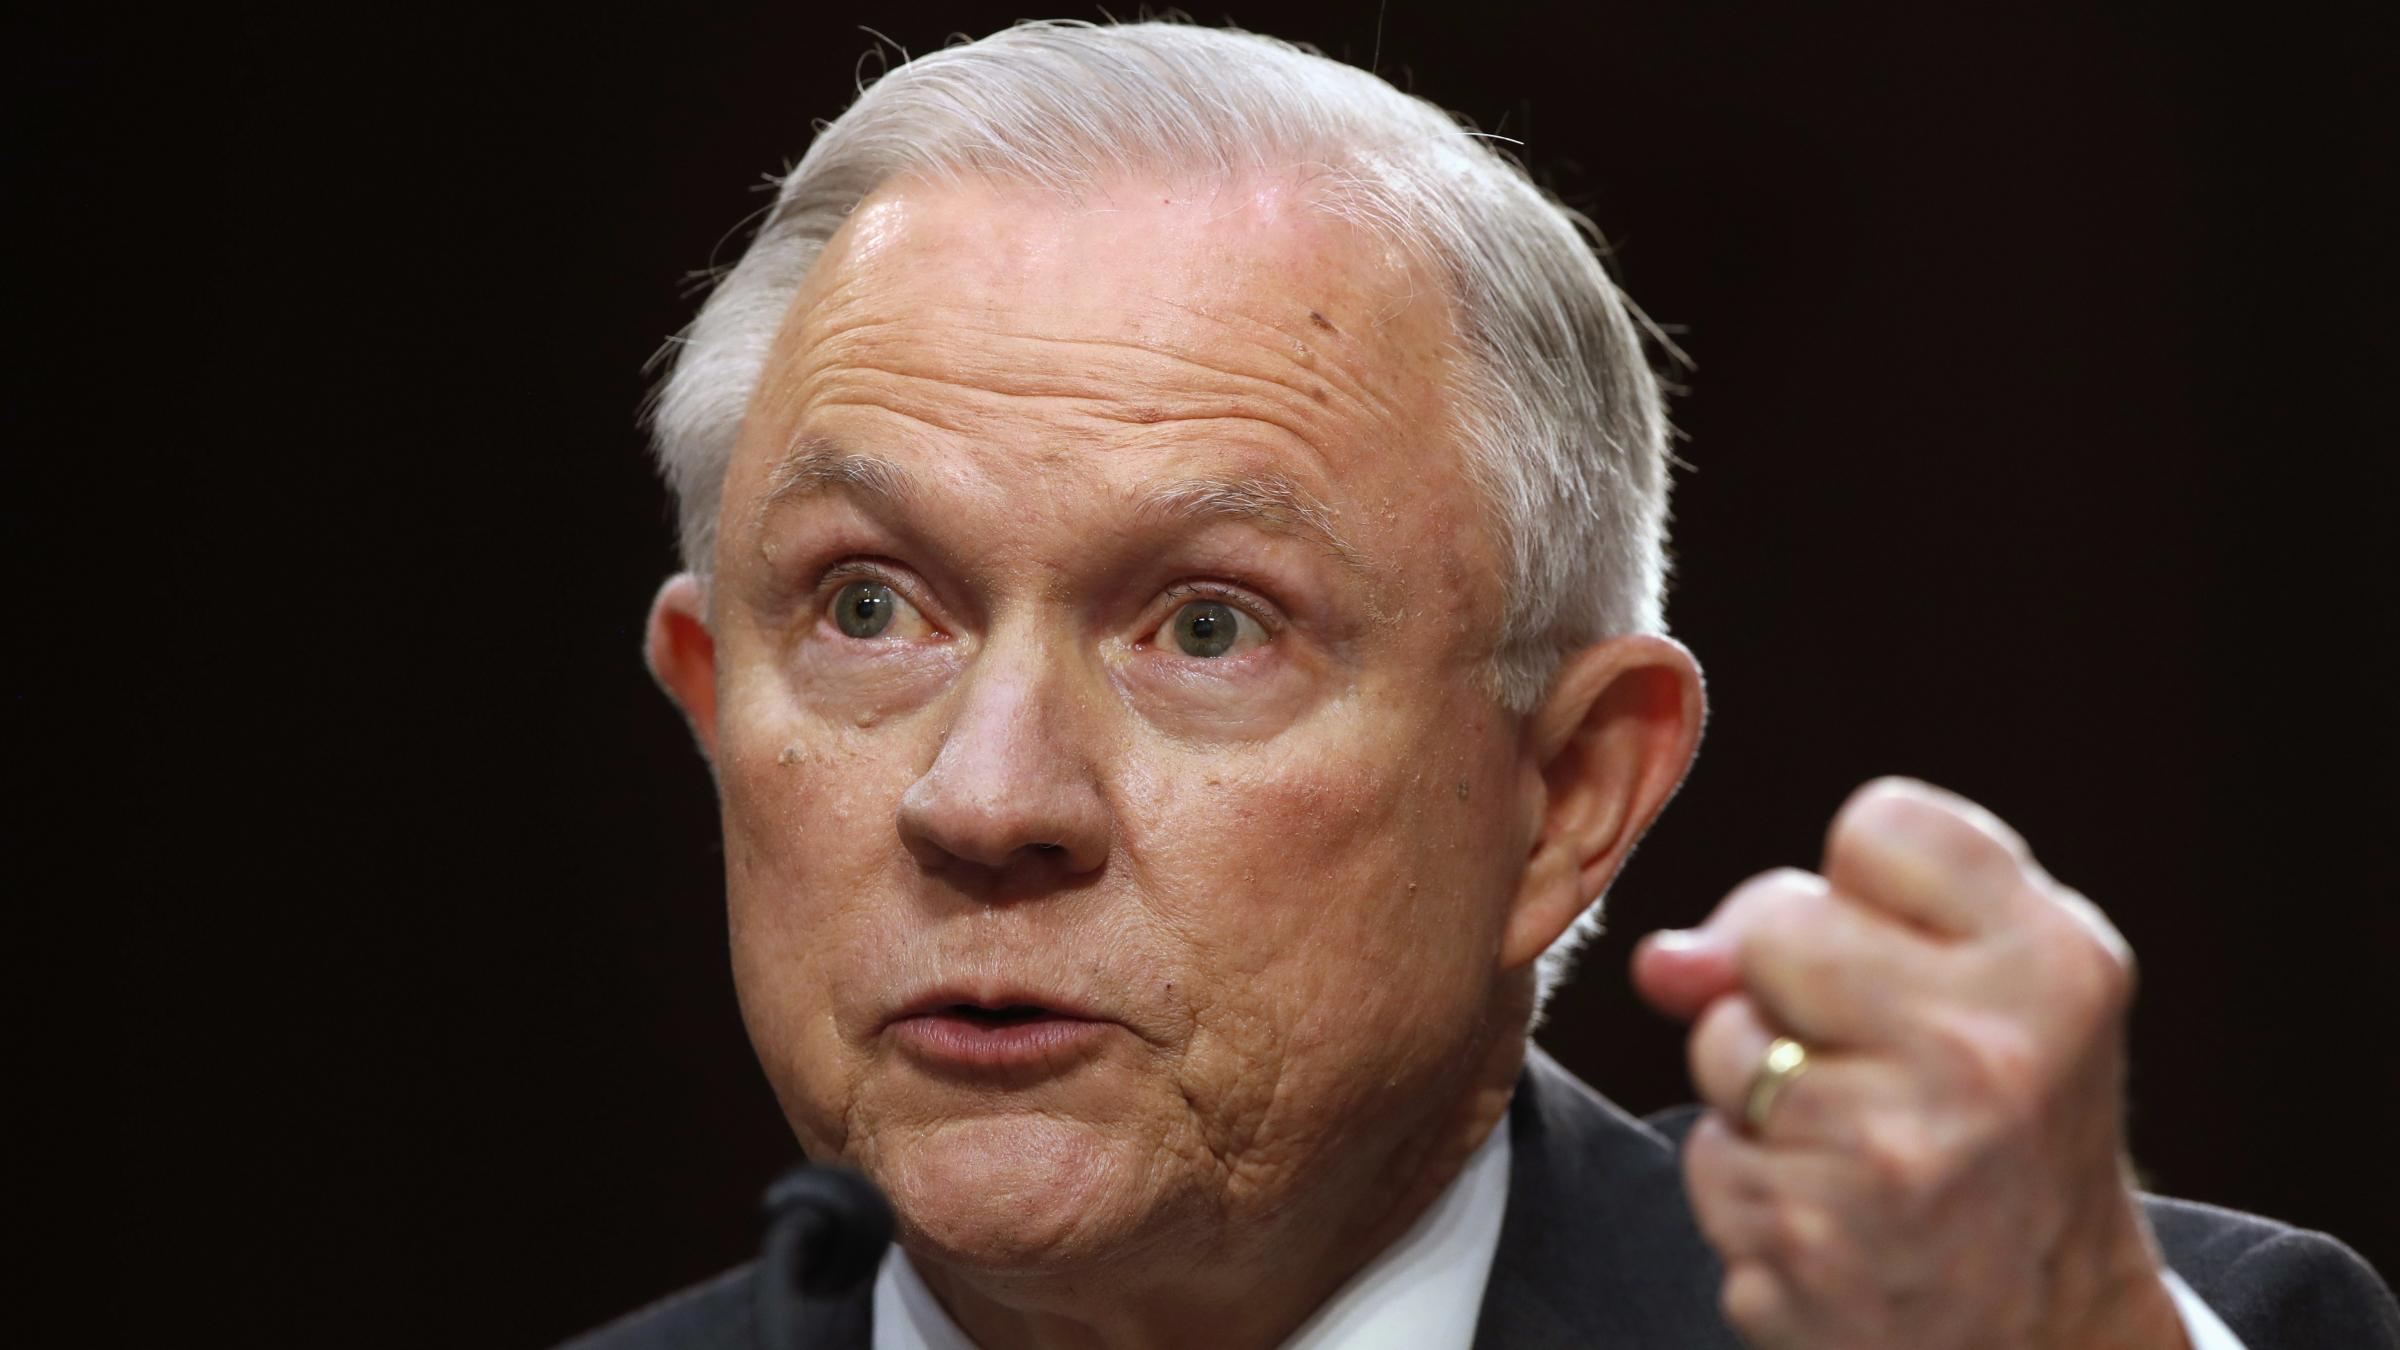 Sessions: 'I did not recuse myself from defending my honor'